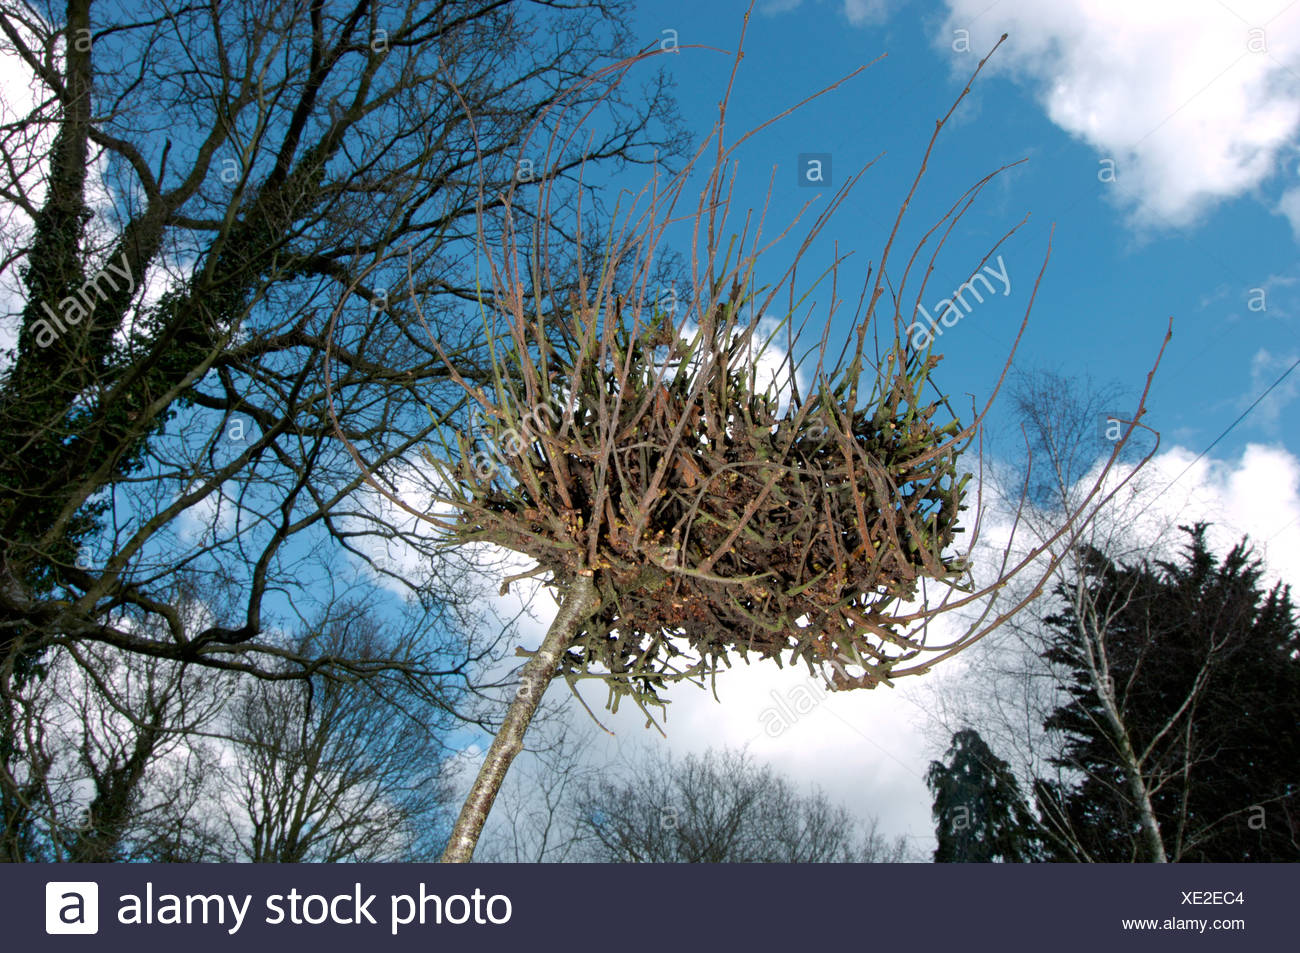 Witches' Broom gall on Silver Birch, caused by the fungus Taphrina betulina - Stock Image